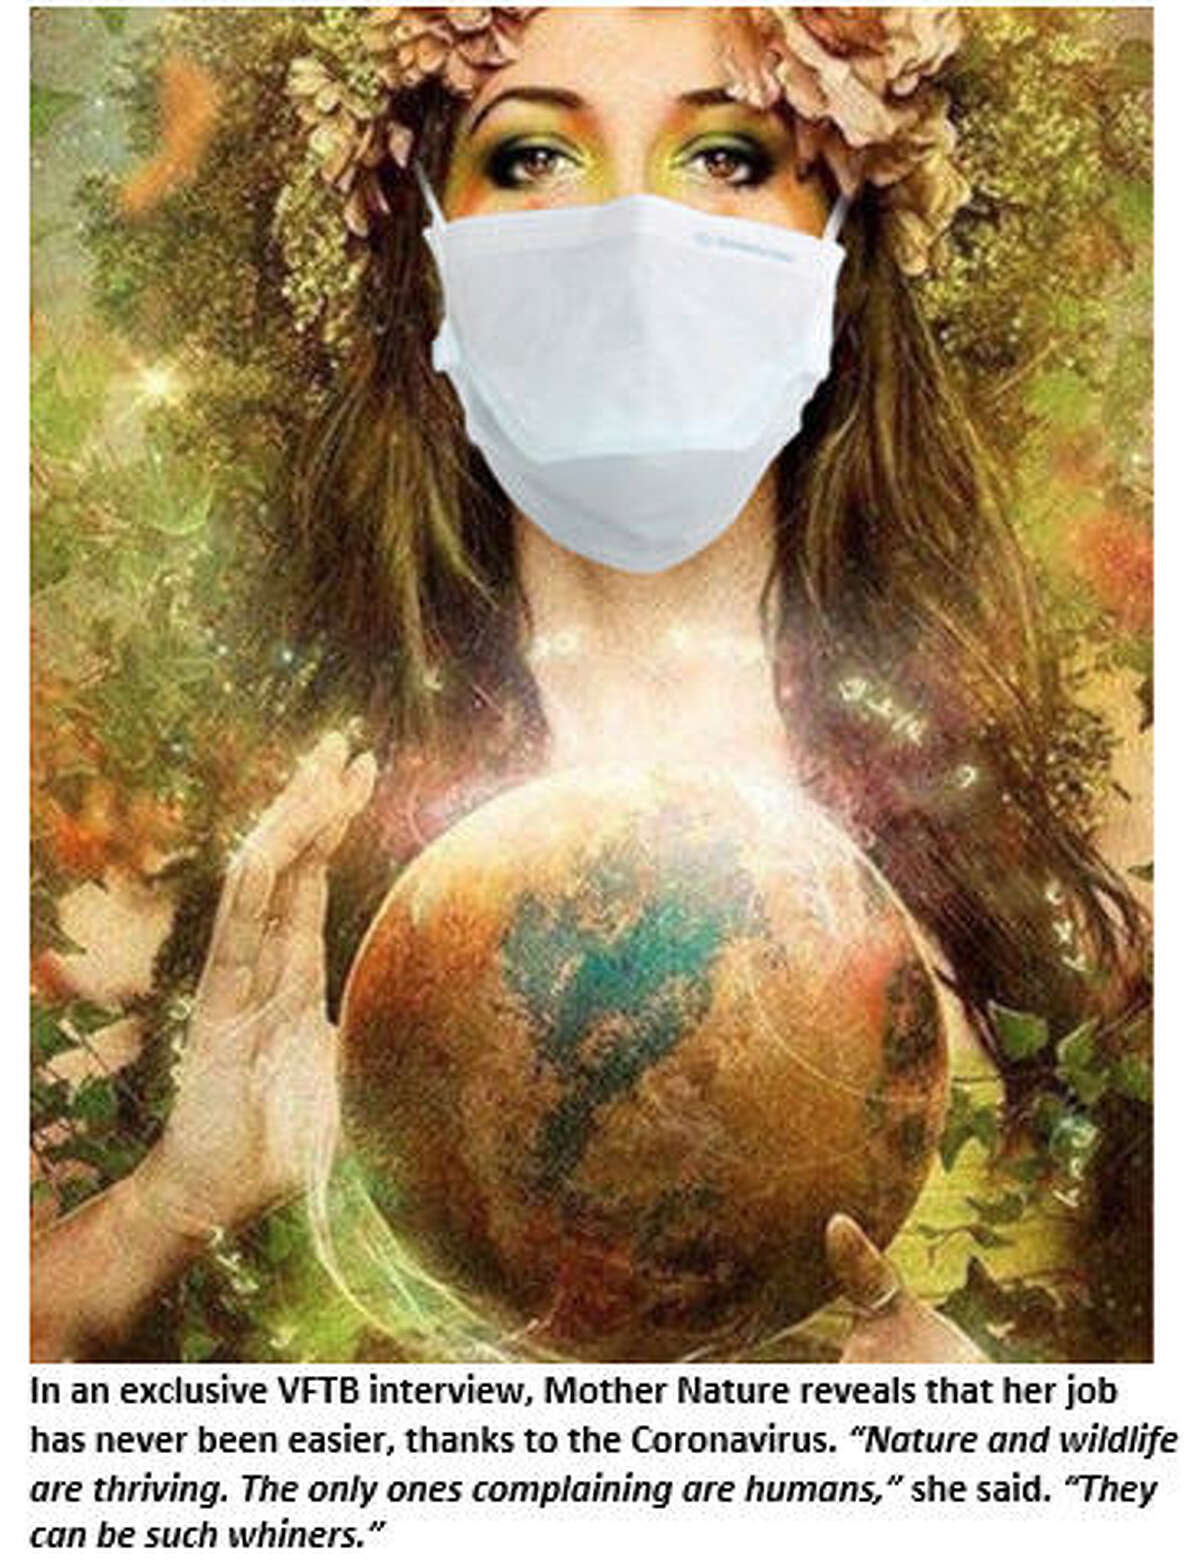 The CDC says to wear masks. So does Dr. Anthony Fauci. So does Sean Hannity. But not Trump,